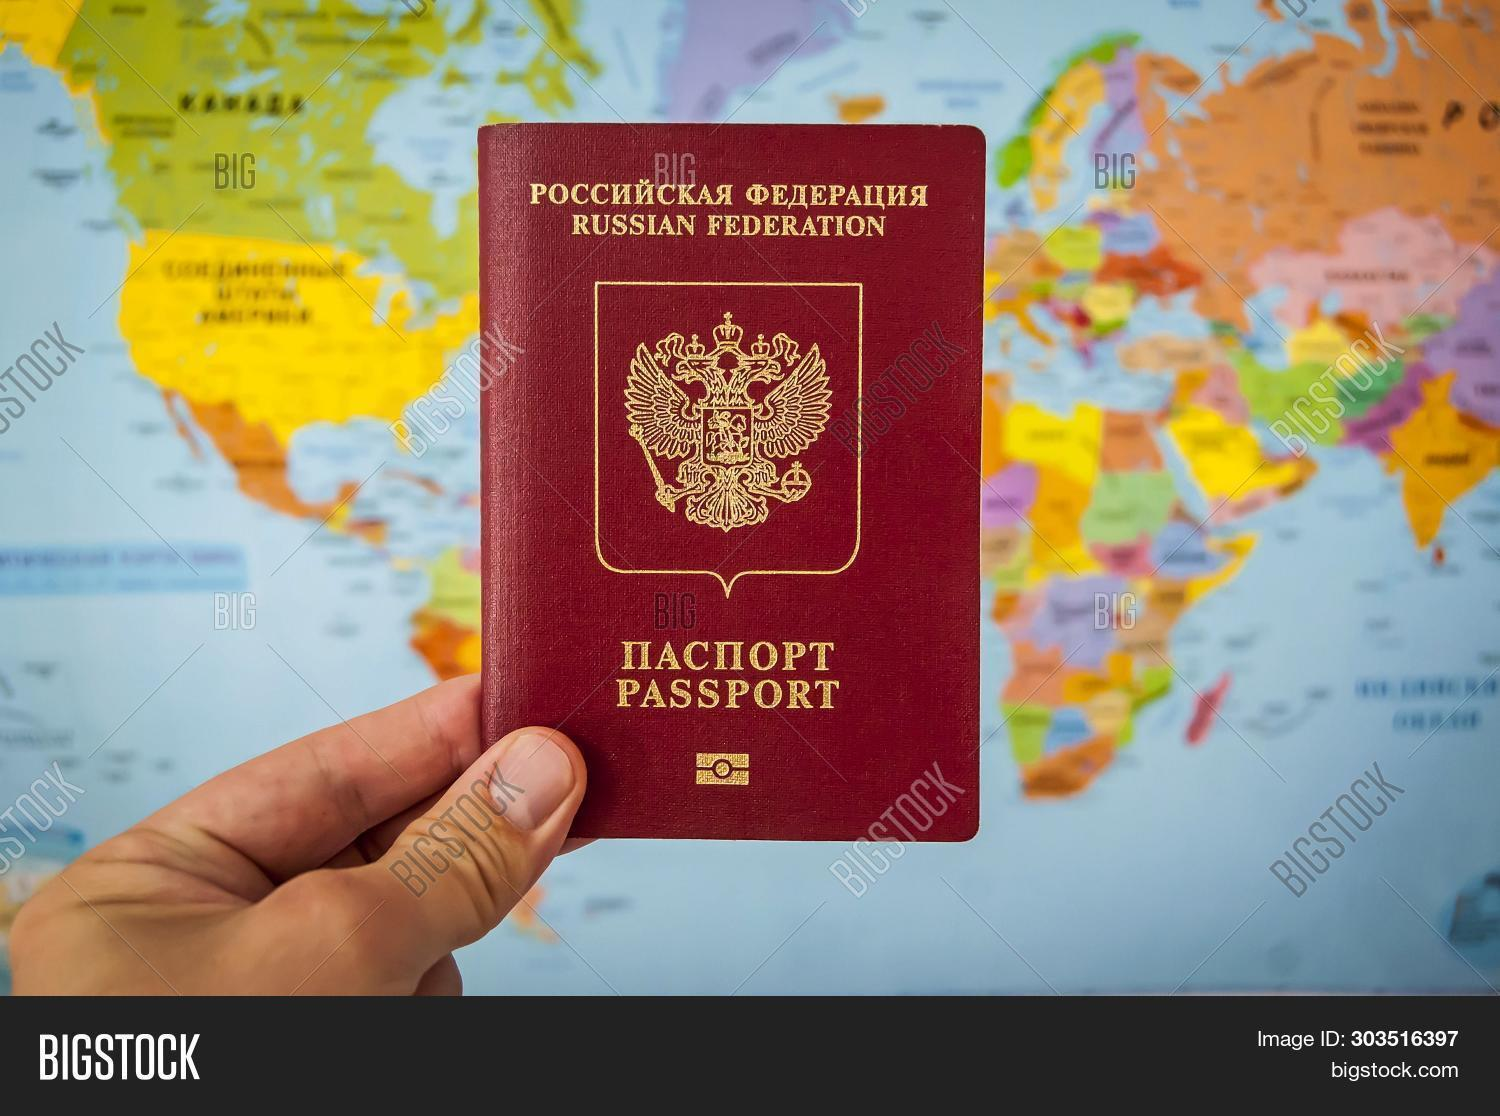 Hand Holding Pport Image & Photo (Free Trial)   Bigstock on korea map, china map, poland map, australia map, united kingdom map, france map, iraq map, soviet union map, europe map, africa map, italy map, asia map, saudi arabia map, romania map, india map, baltic map, canada map, japan map, eurasia map, germany map,